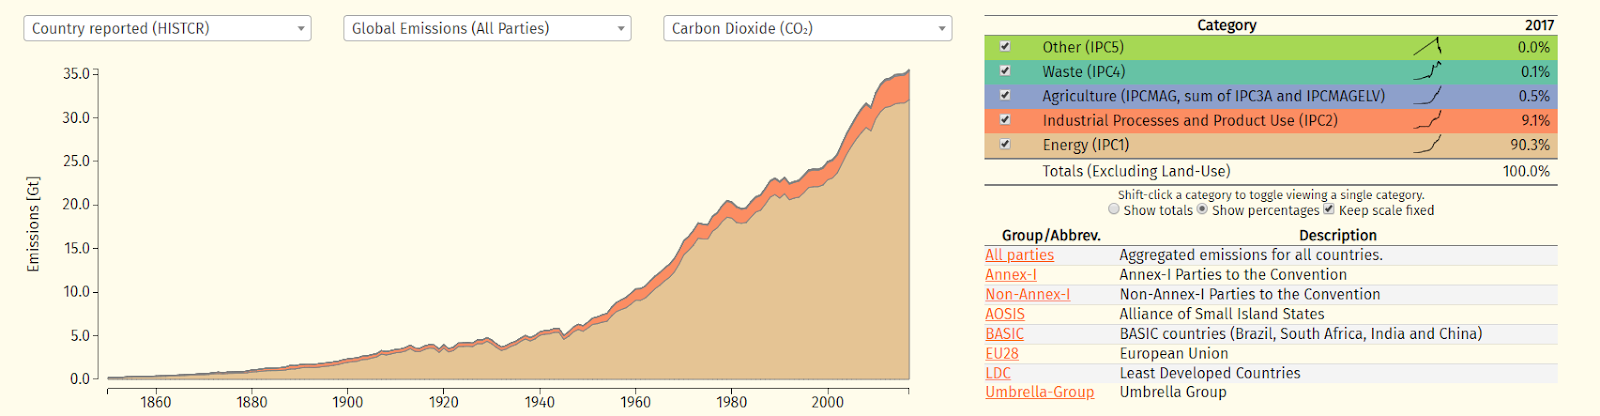 The different sources of man-made athmospheric carbon emissions